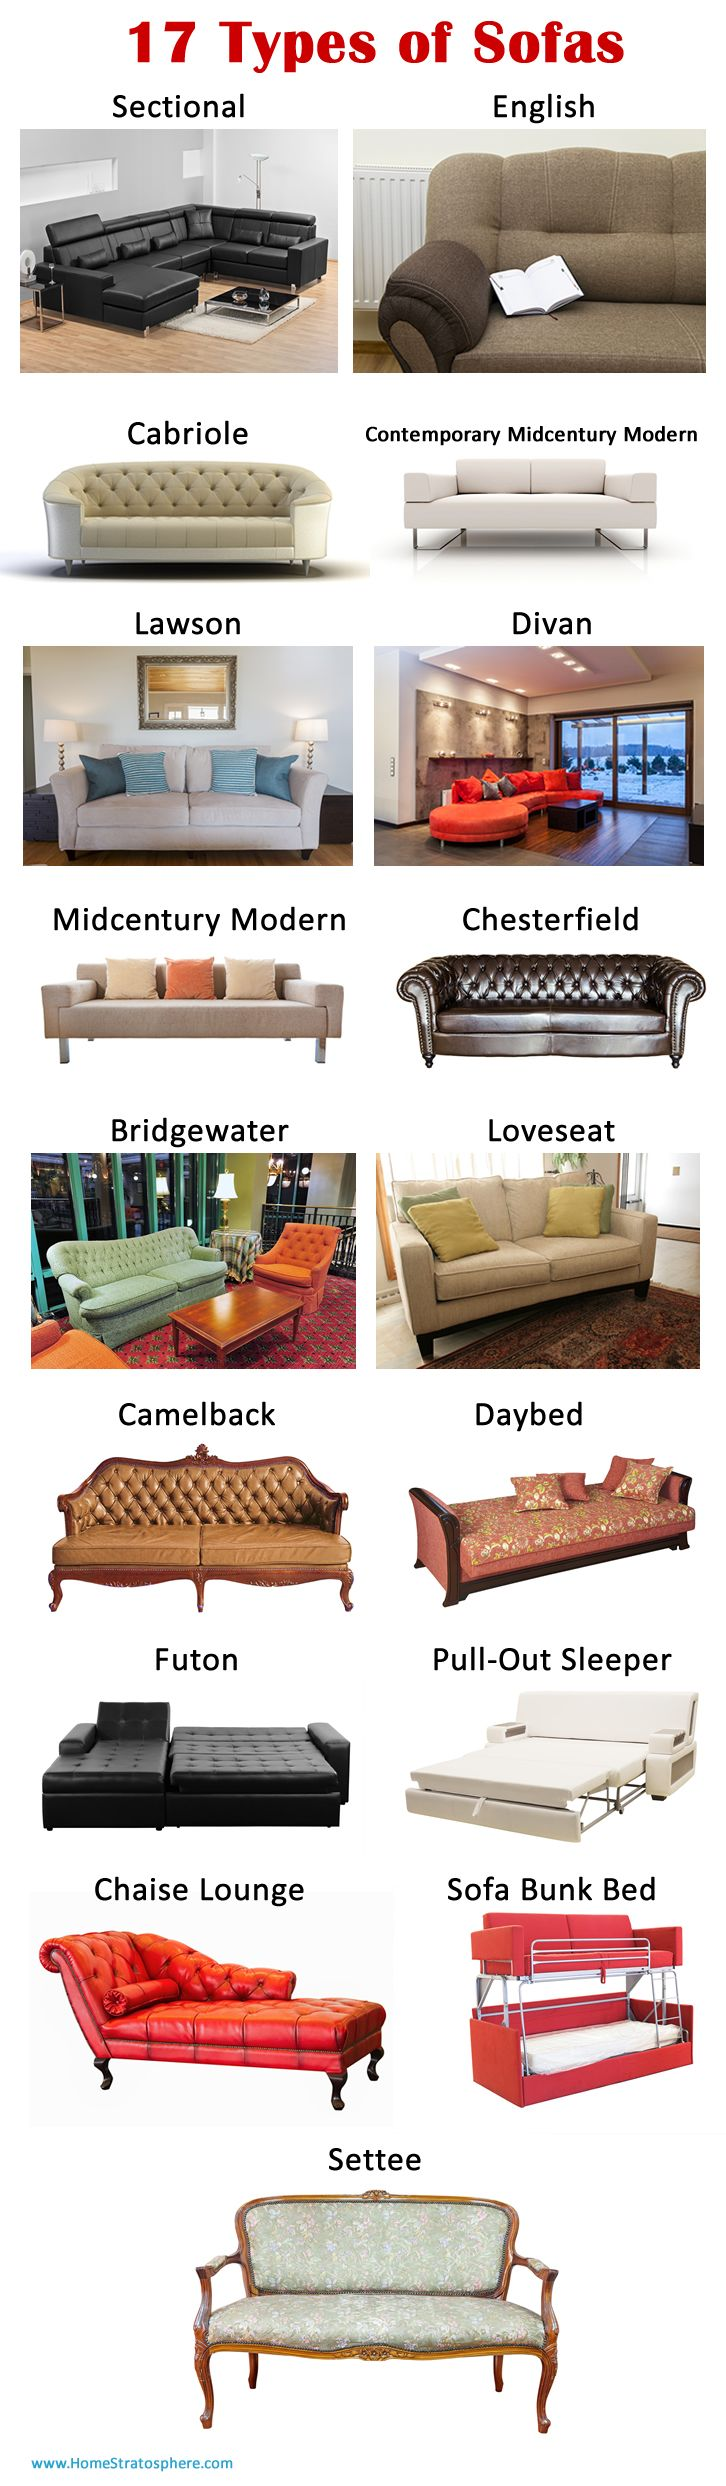 25 Styles Of Sofas Couches Explained